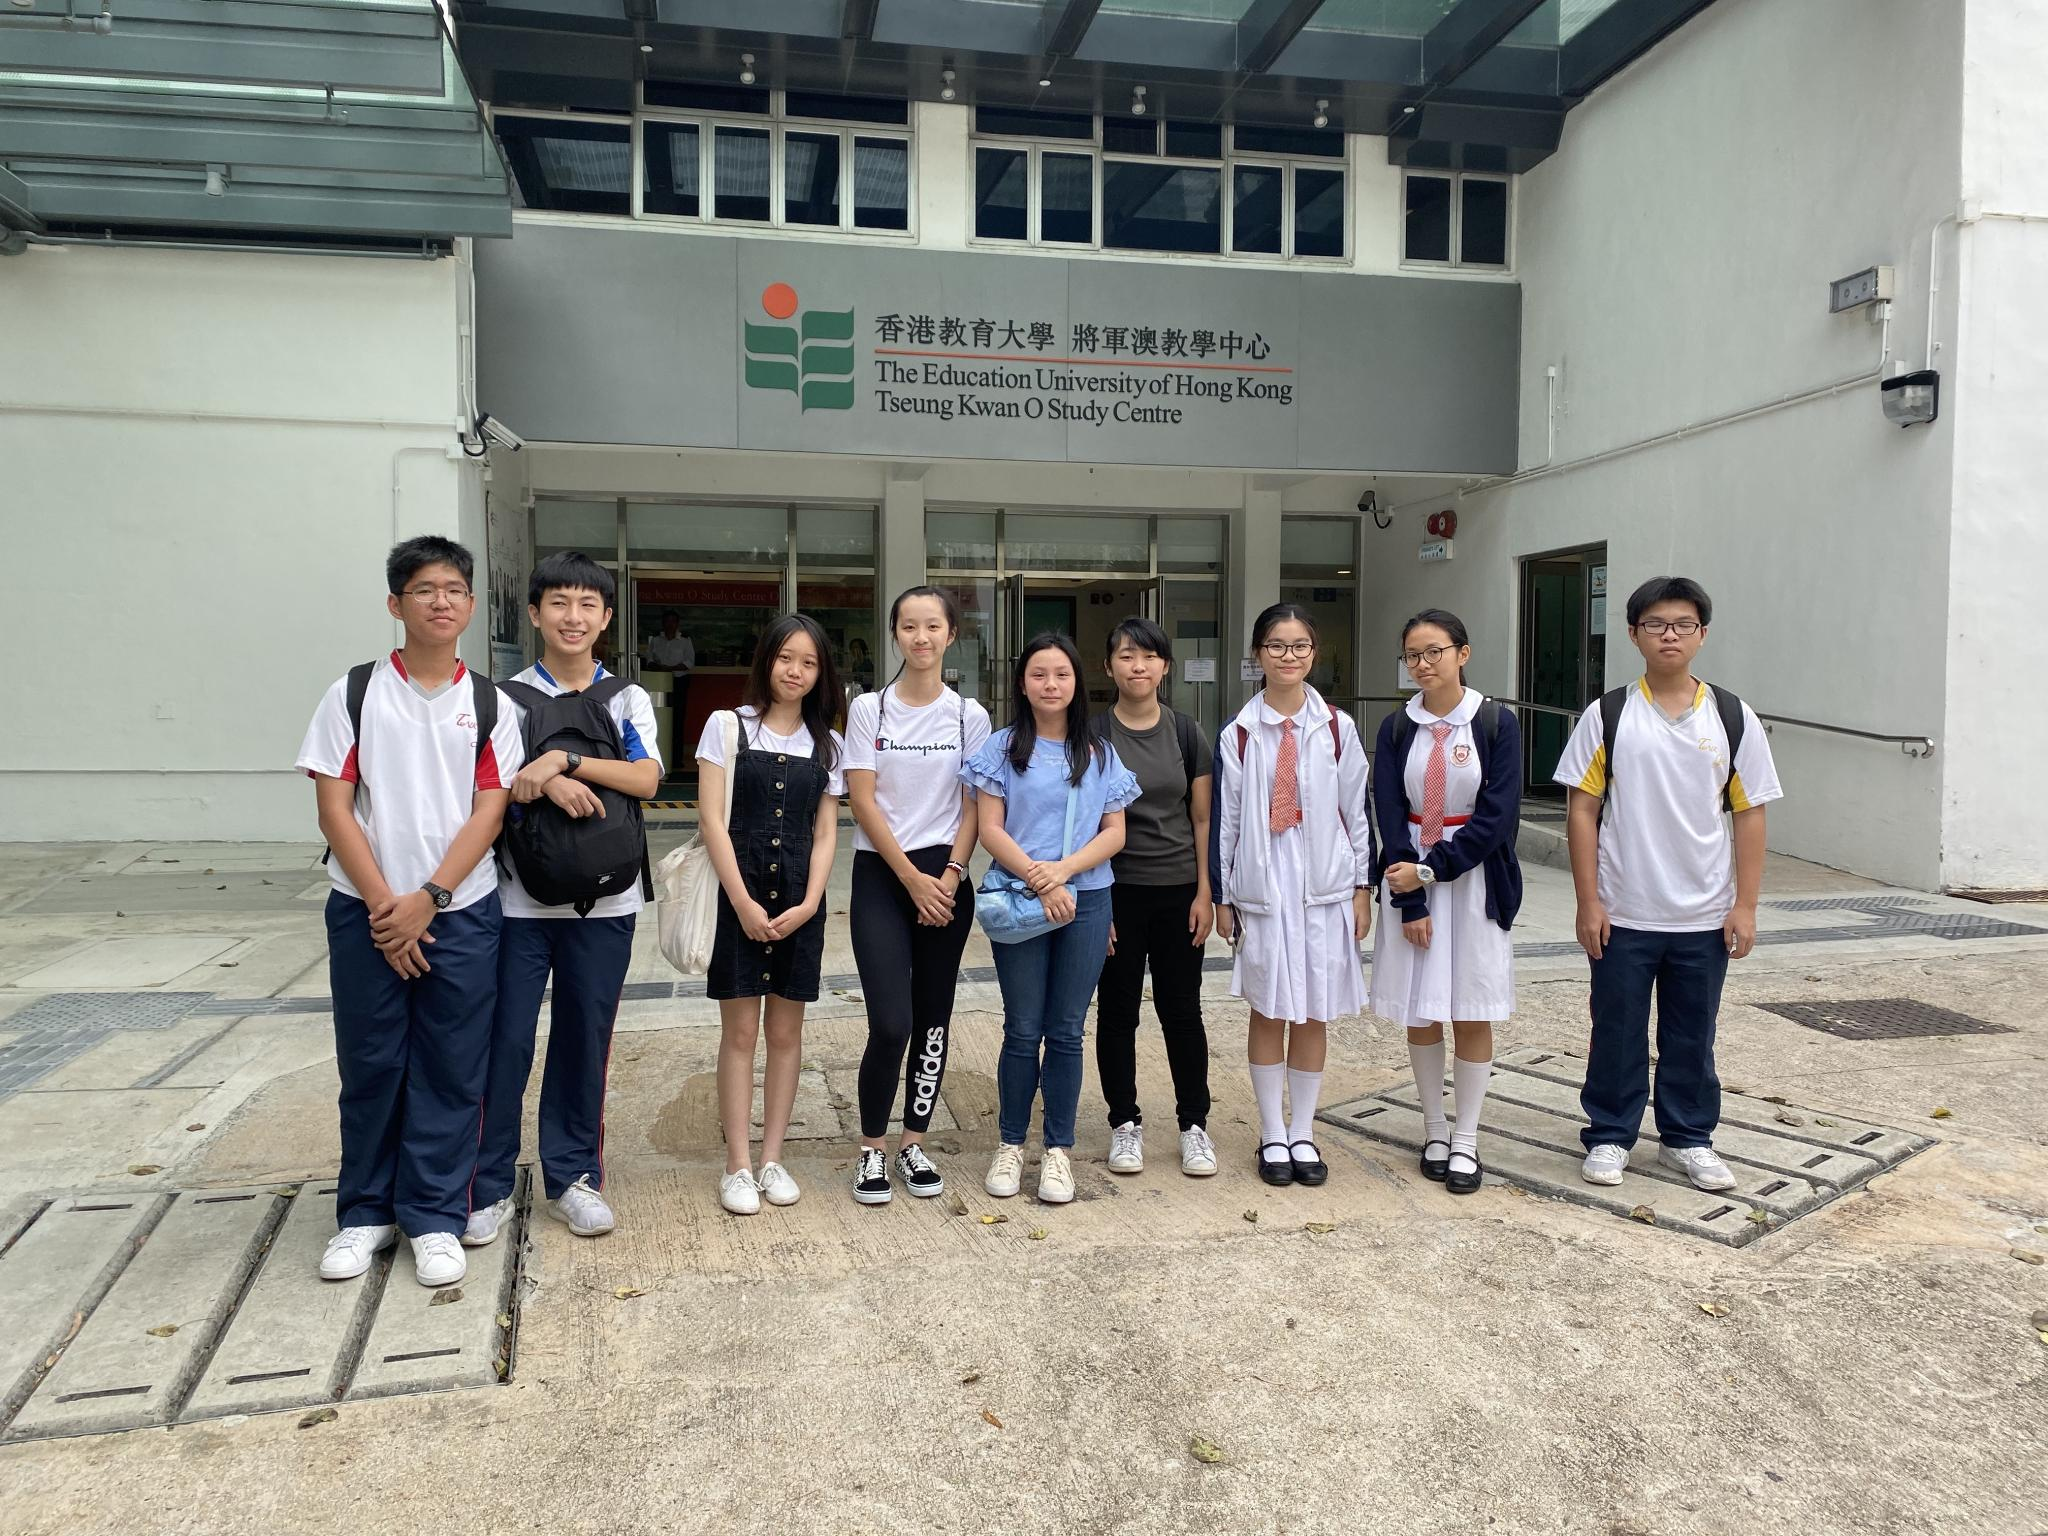 A group photo was taken in the Tseung Kwan O Study Centre of the Education University of Hong Kong.